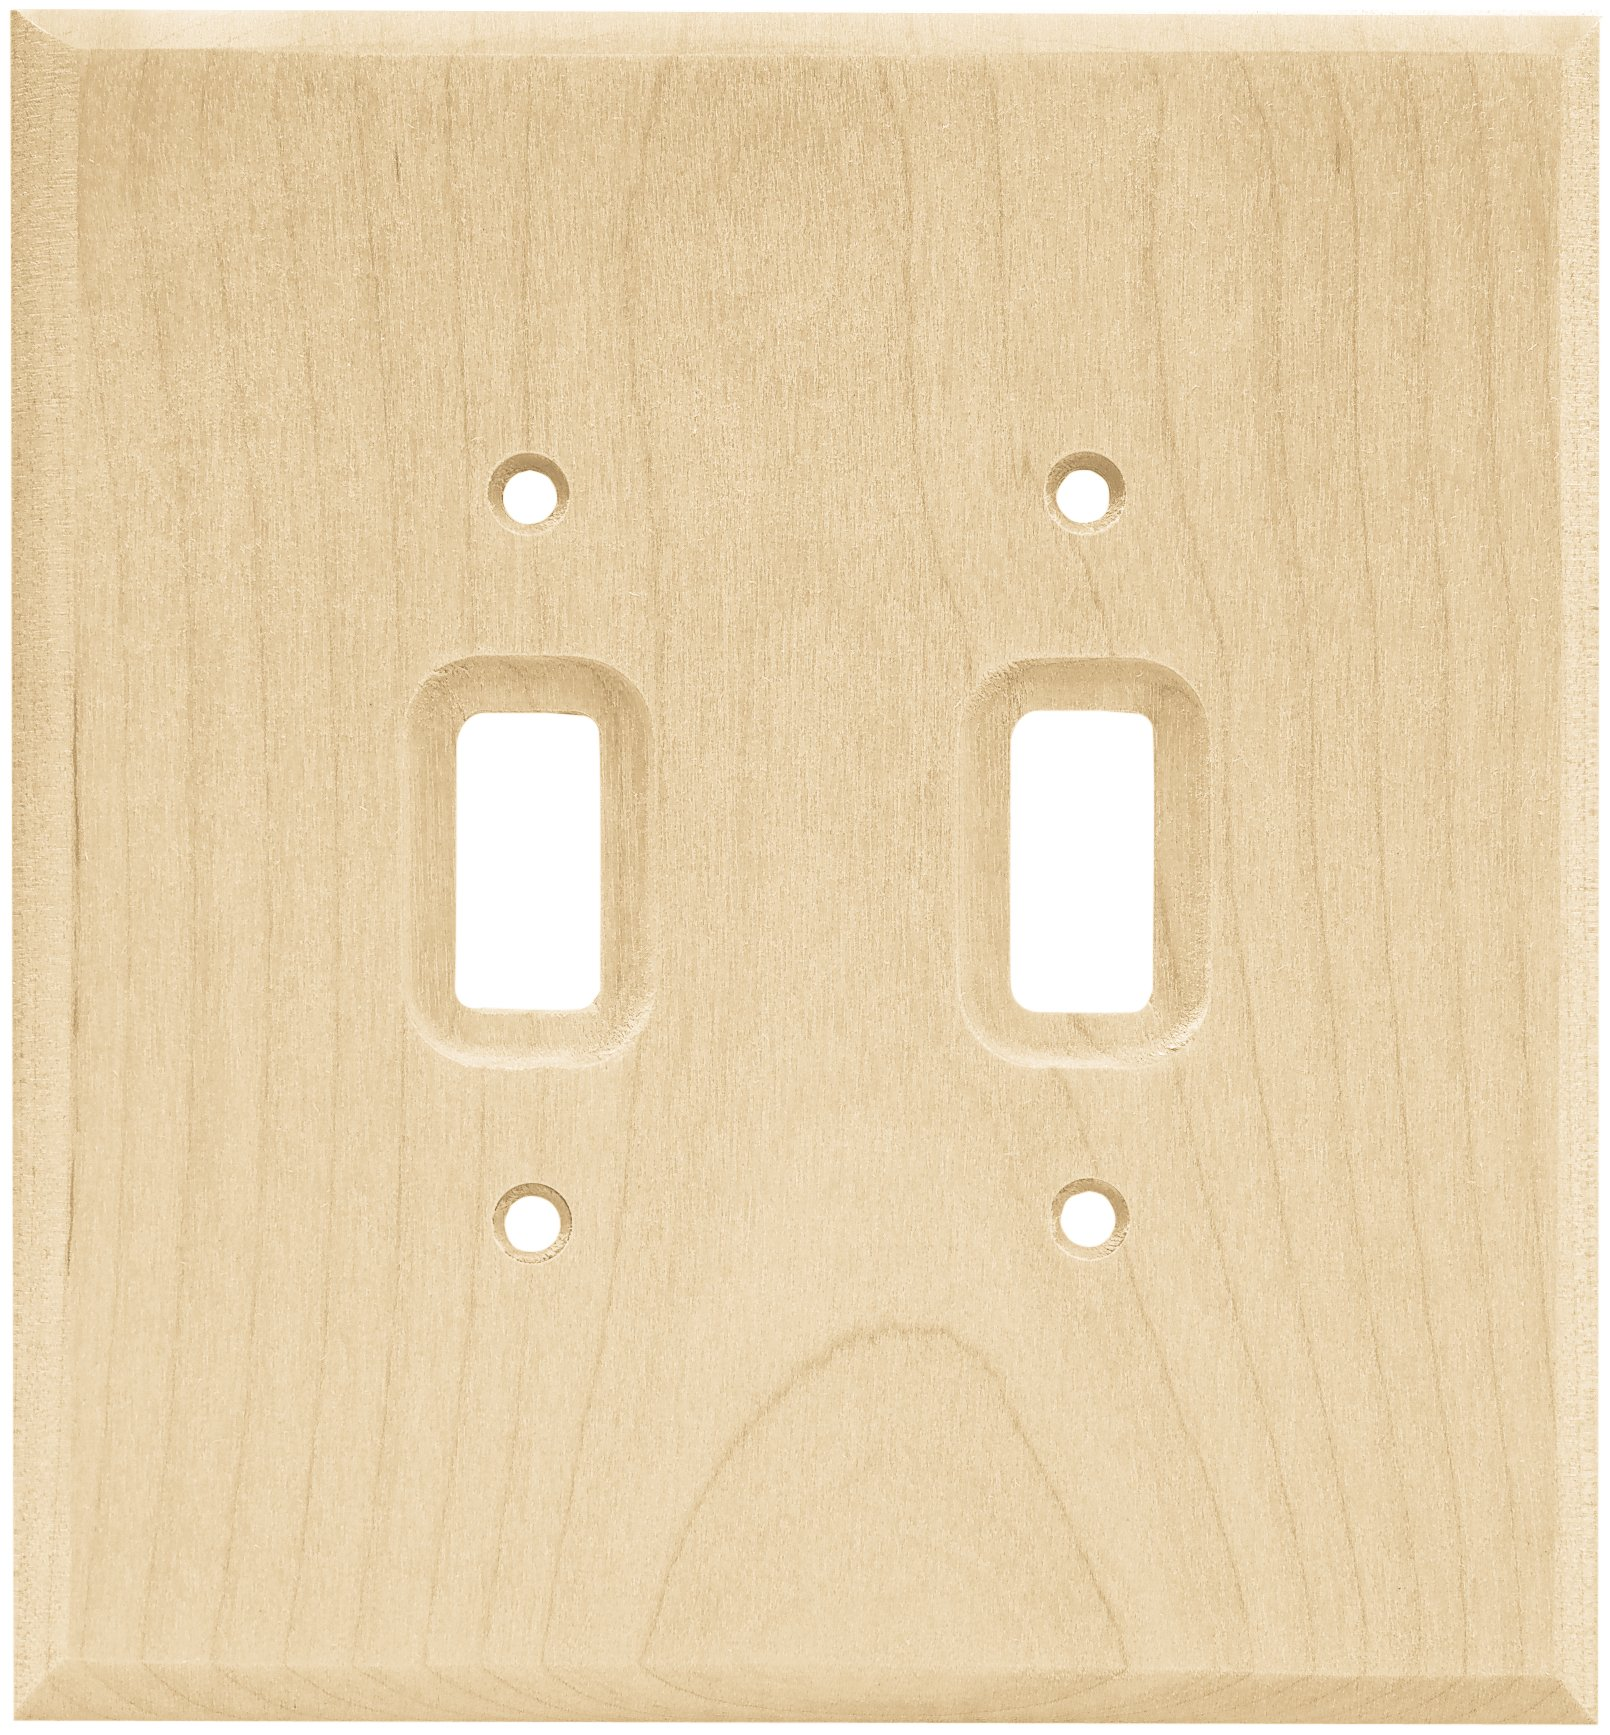 BRAINERD 64656 Wood Square Double Toggle Switch Wall Plate/Switch Plate/Cover, Unfinished Wood